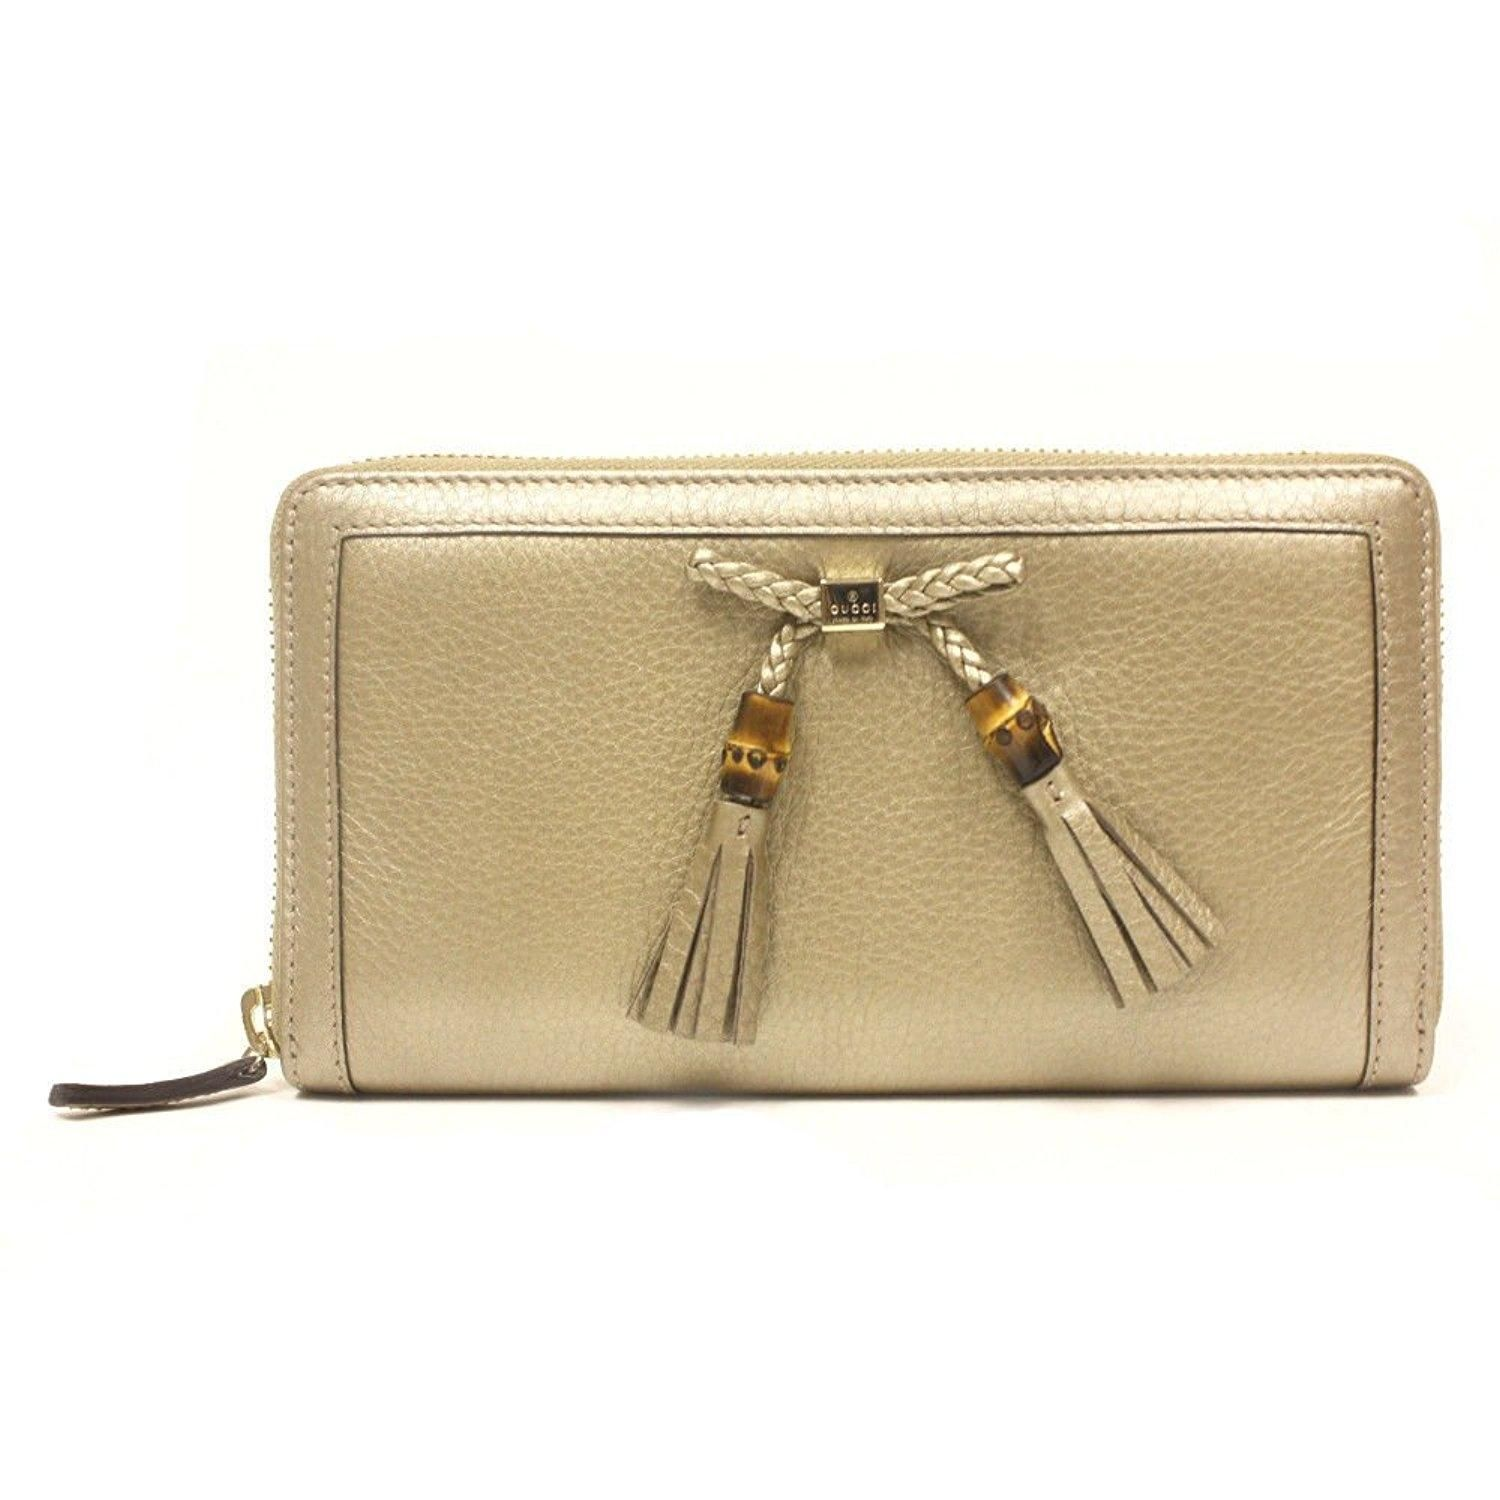 b98eb219e19a Free shipping and guaranteed authenticity on GUCCI Bamboo Tassel Tan  Metallic Leather Continental Zip Wallet 269991 at Tradesy. GUCCI Bamboo  Tassel Tan ...